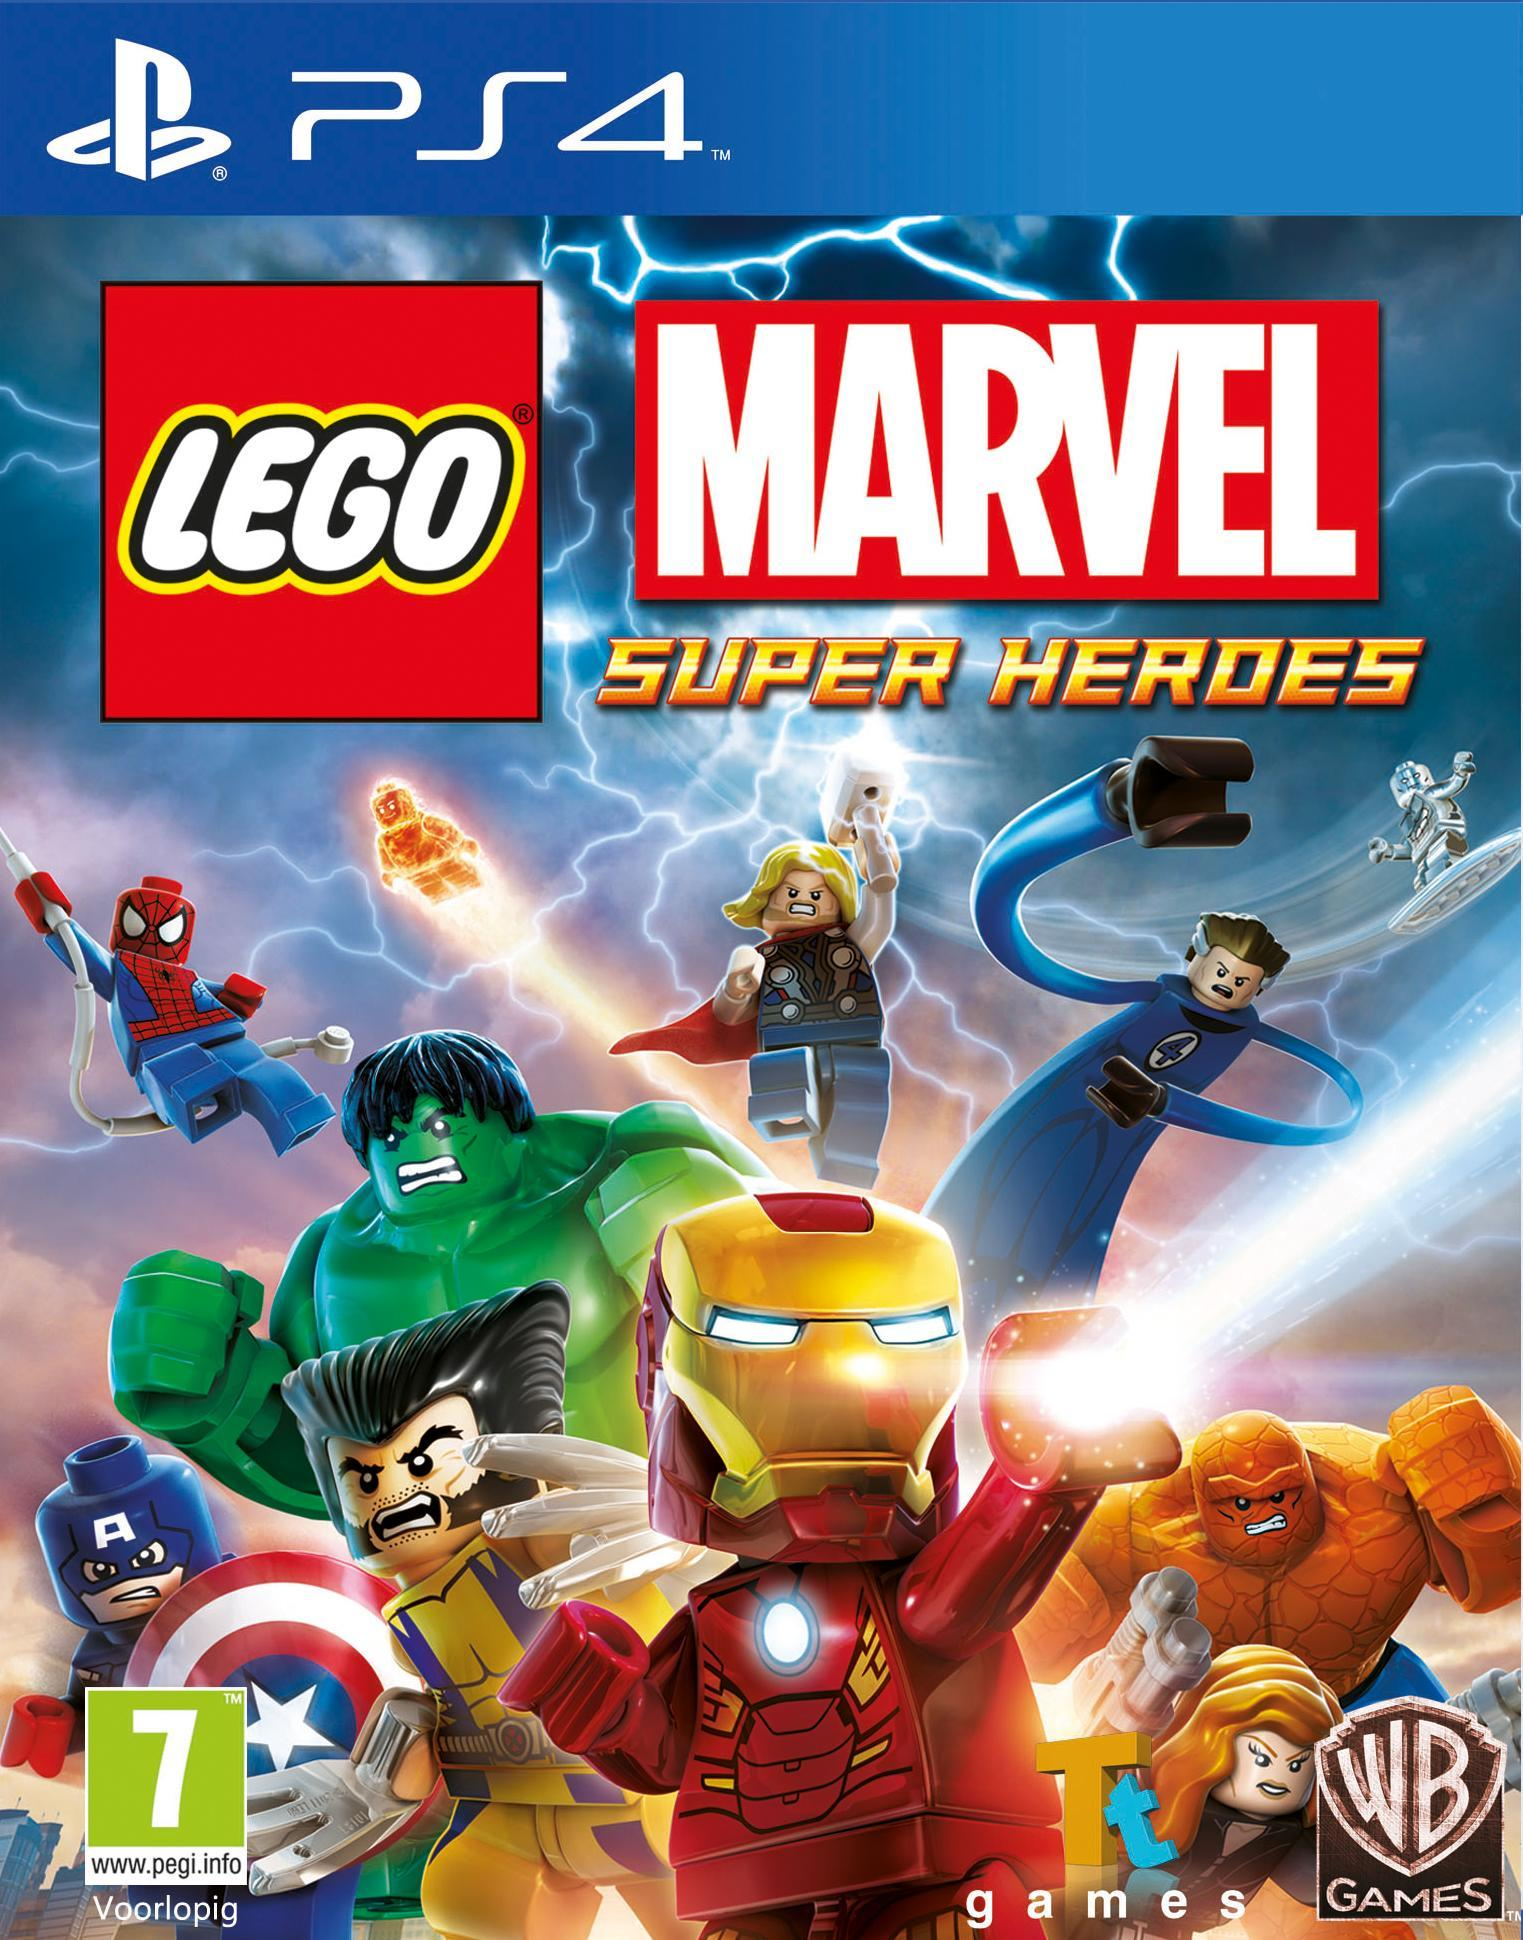 Warner Bros LEGO Marvel Super Heroes PS4 (1000436982) thumbnail